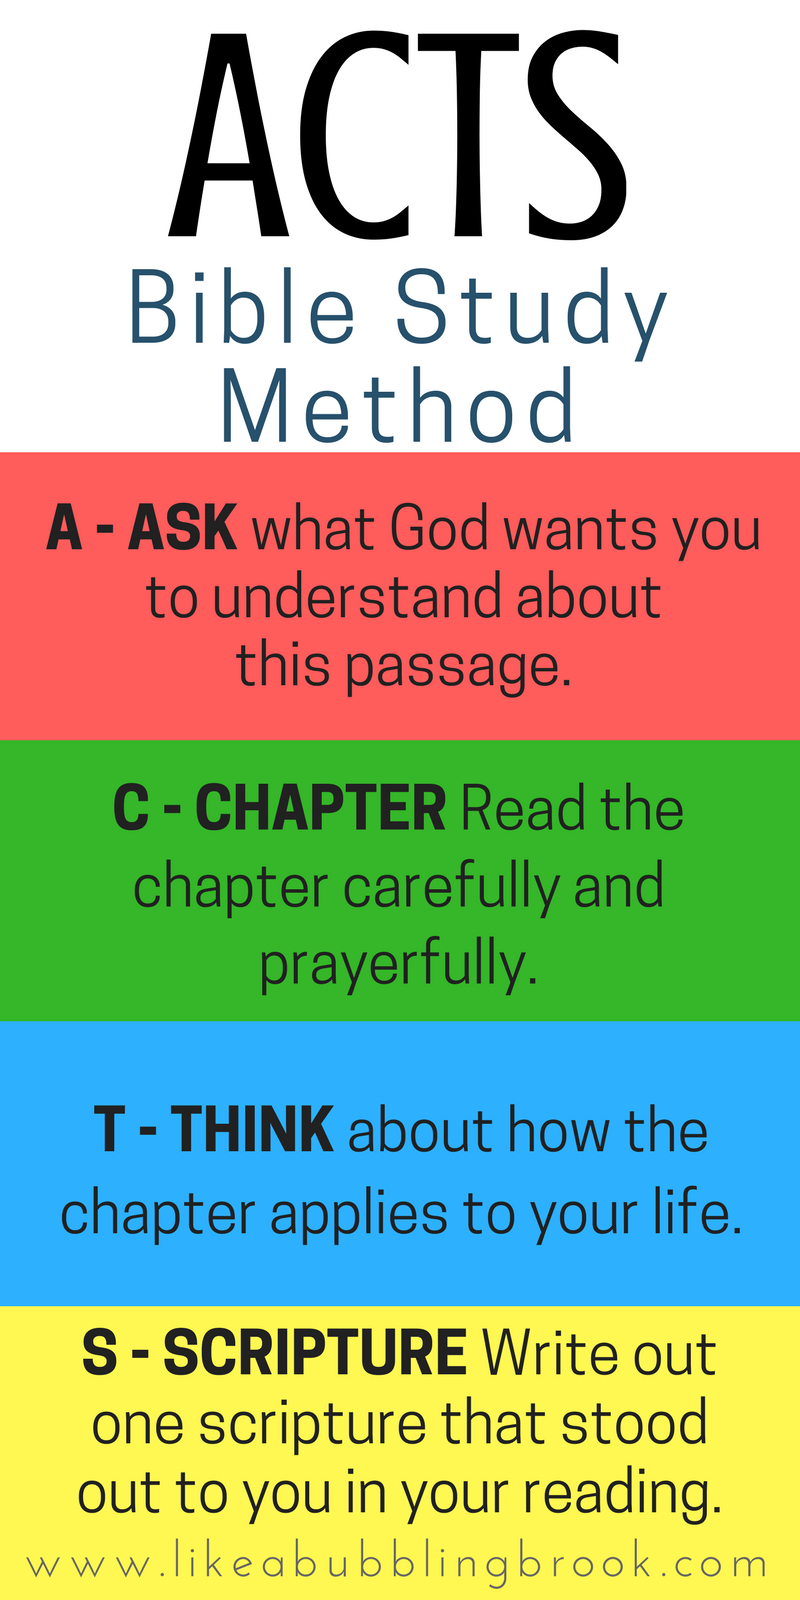 The ACTS Bible Study Method #bible